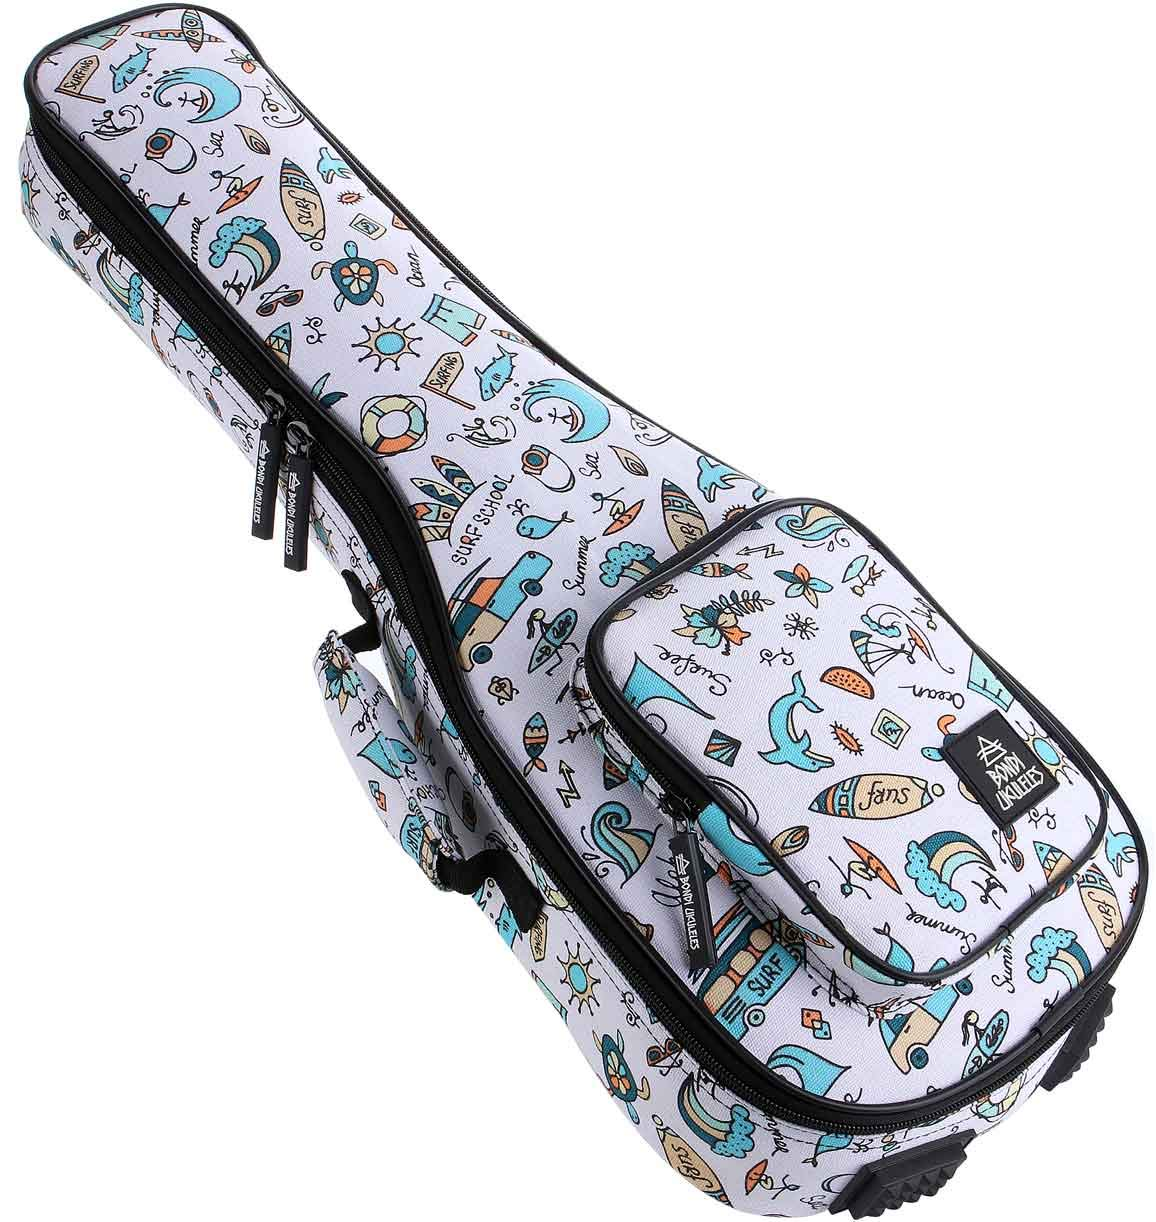 Ukulele Case Concert Size 8 Official Colors Front Pouch Triple Shock-Proof Padding Enhanced Glide Zip Backpack Straps (High Tide Summer Vibes)